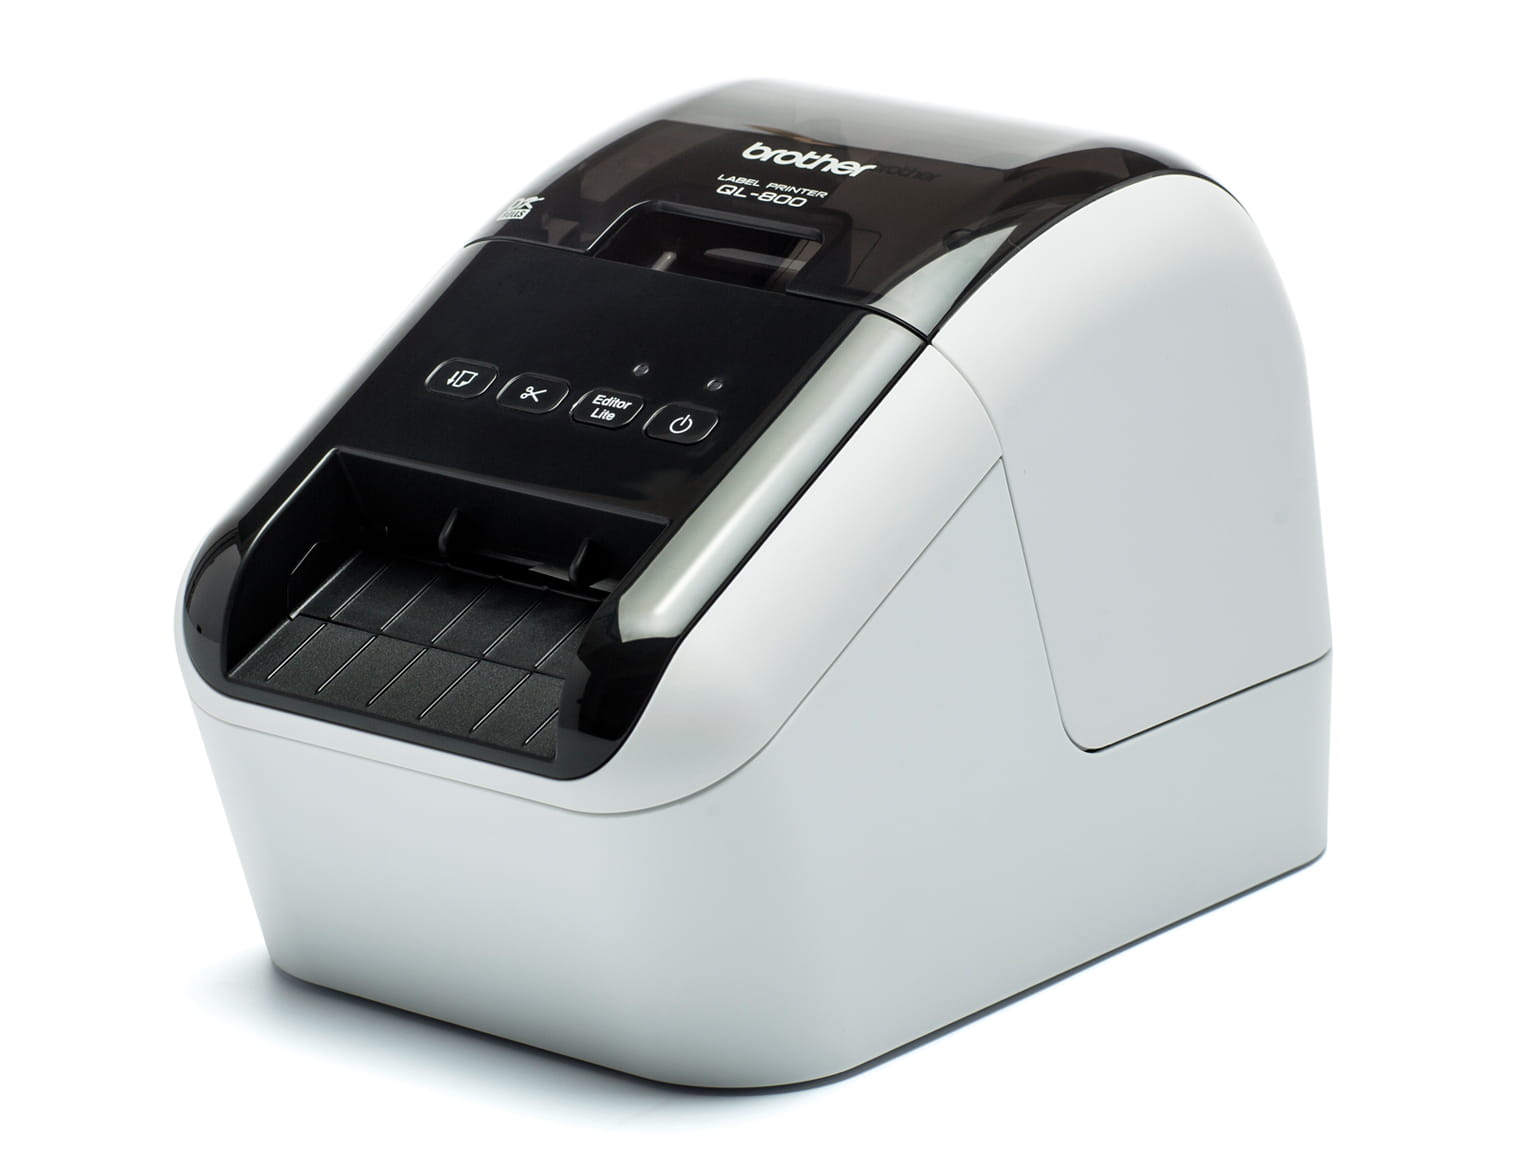 QL-800 Brother Label Printer